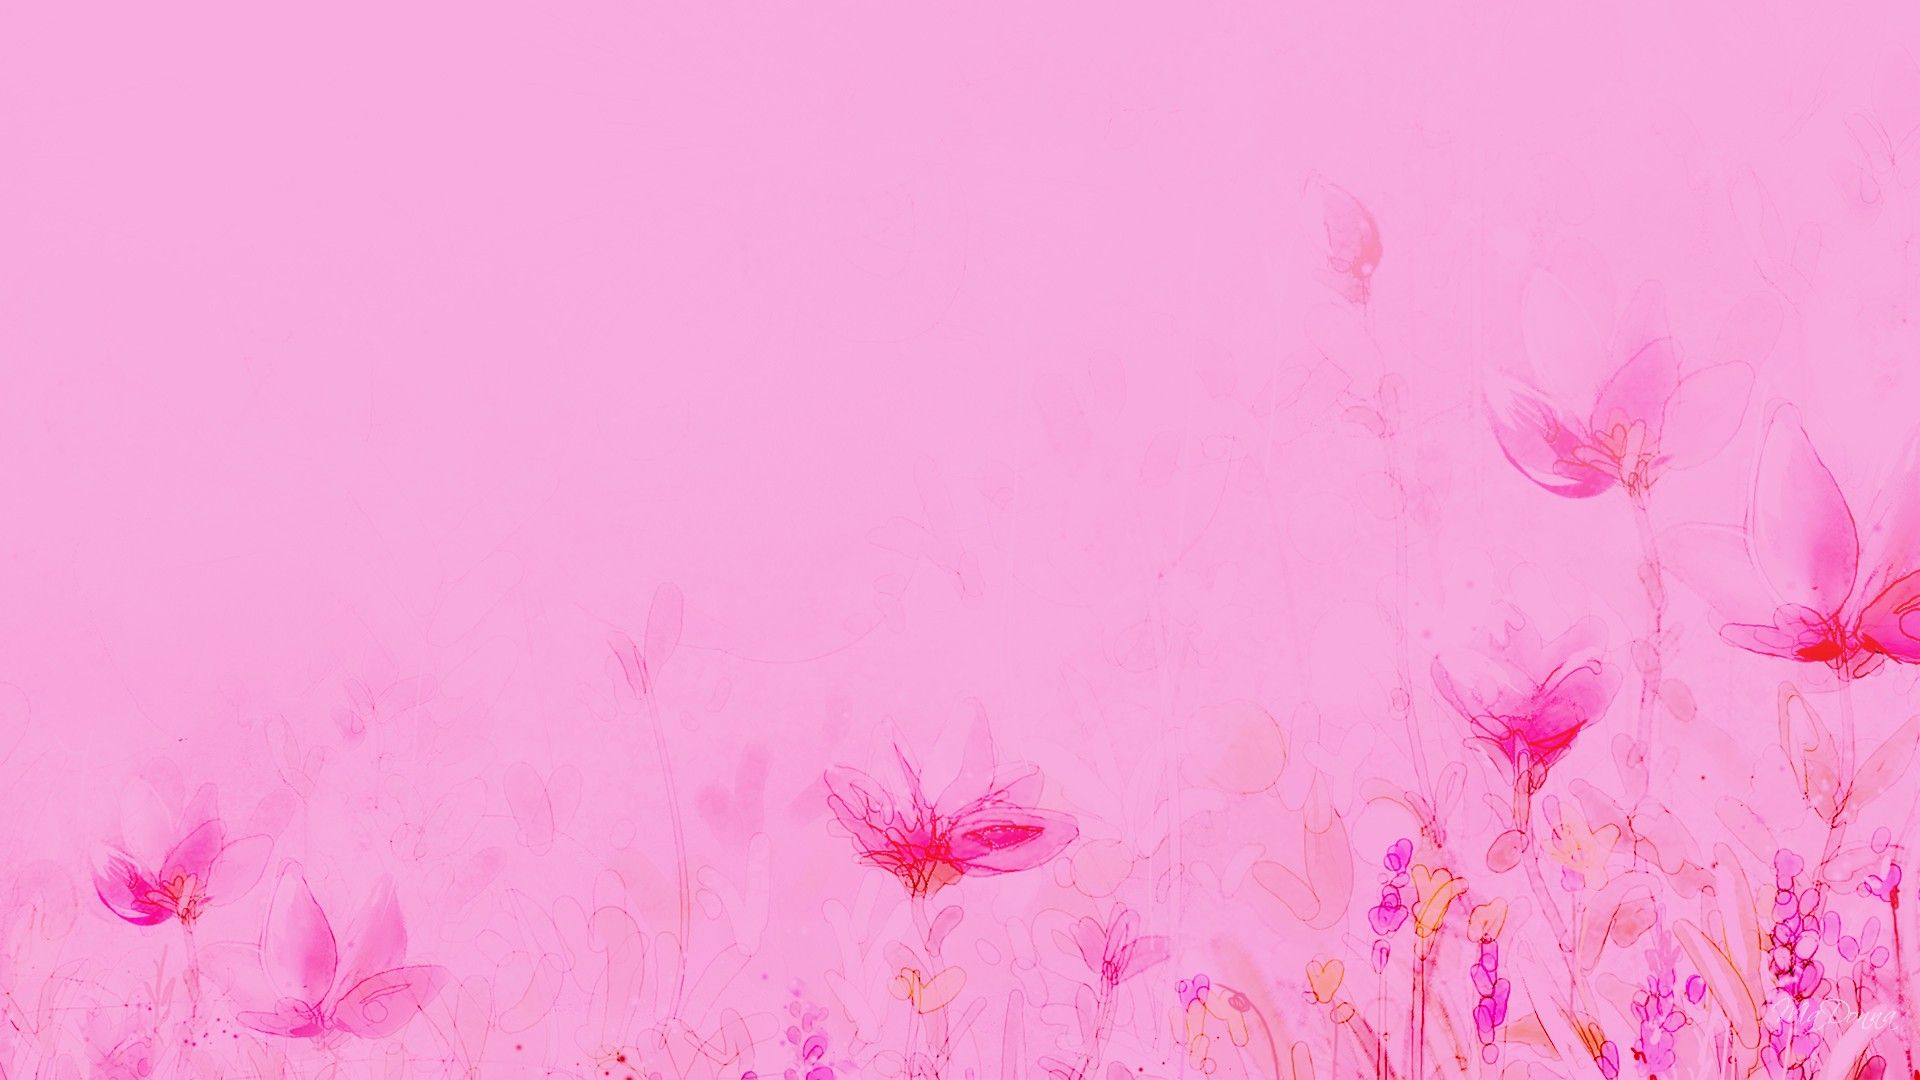 Pin By Medina Mujagic On Photography Pink Flowers Wallpaper Pink Wallpaper Backgrounds Red Color Background